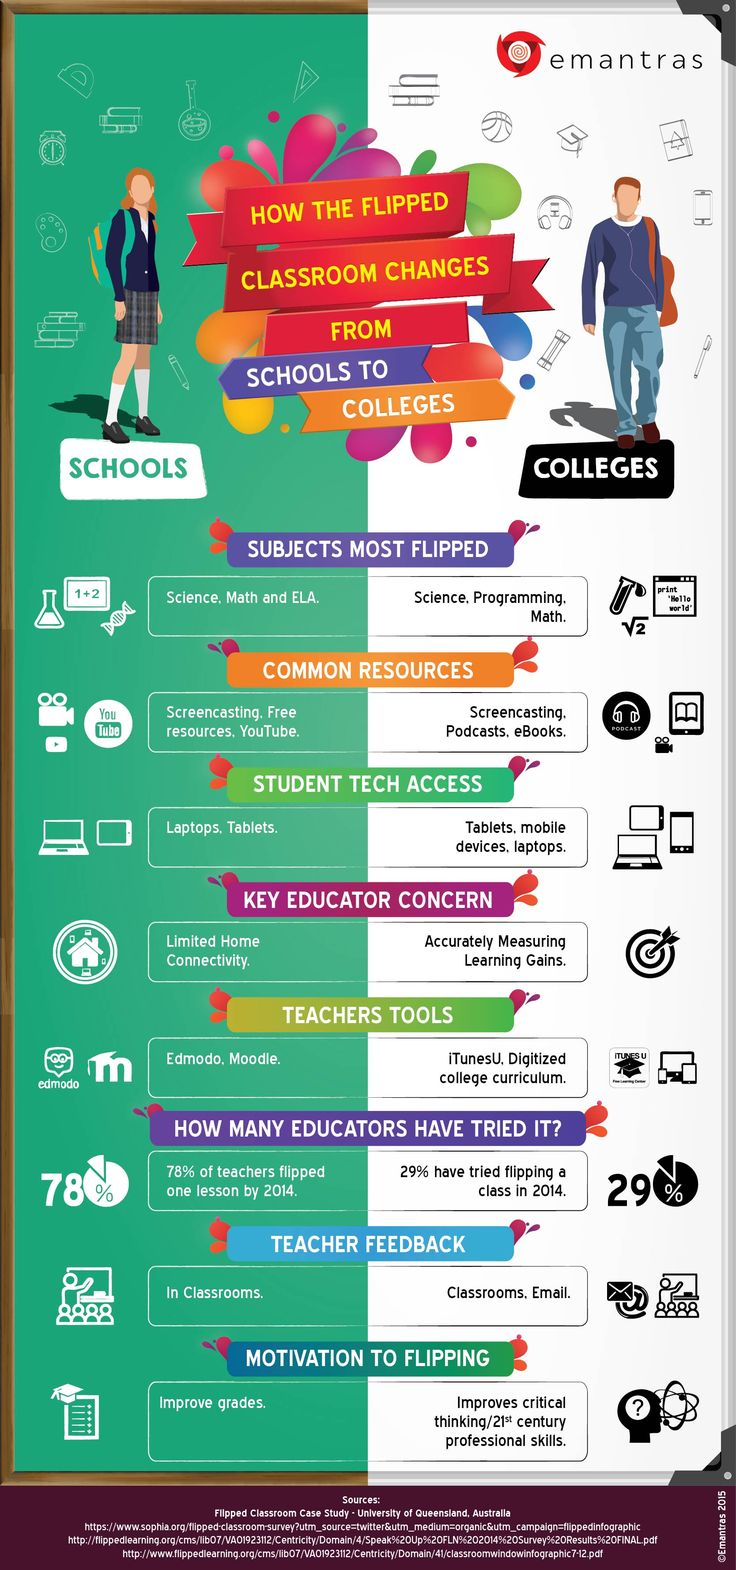 How Flipped Classrooms Change from Schools to Colleges Infographic - http://elearninginfographics.com/flipped-classrooms-change-schools-colleges-infographic/